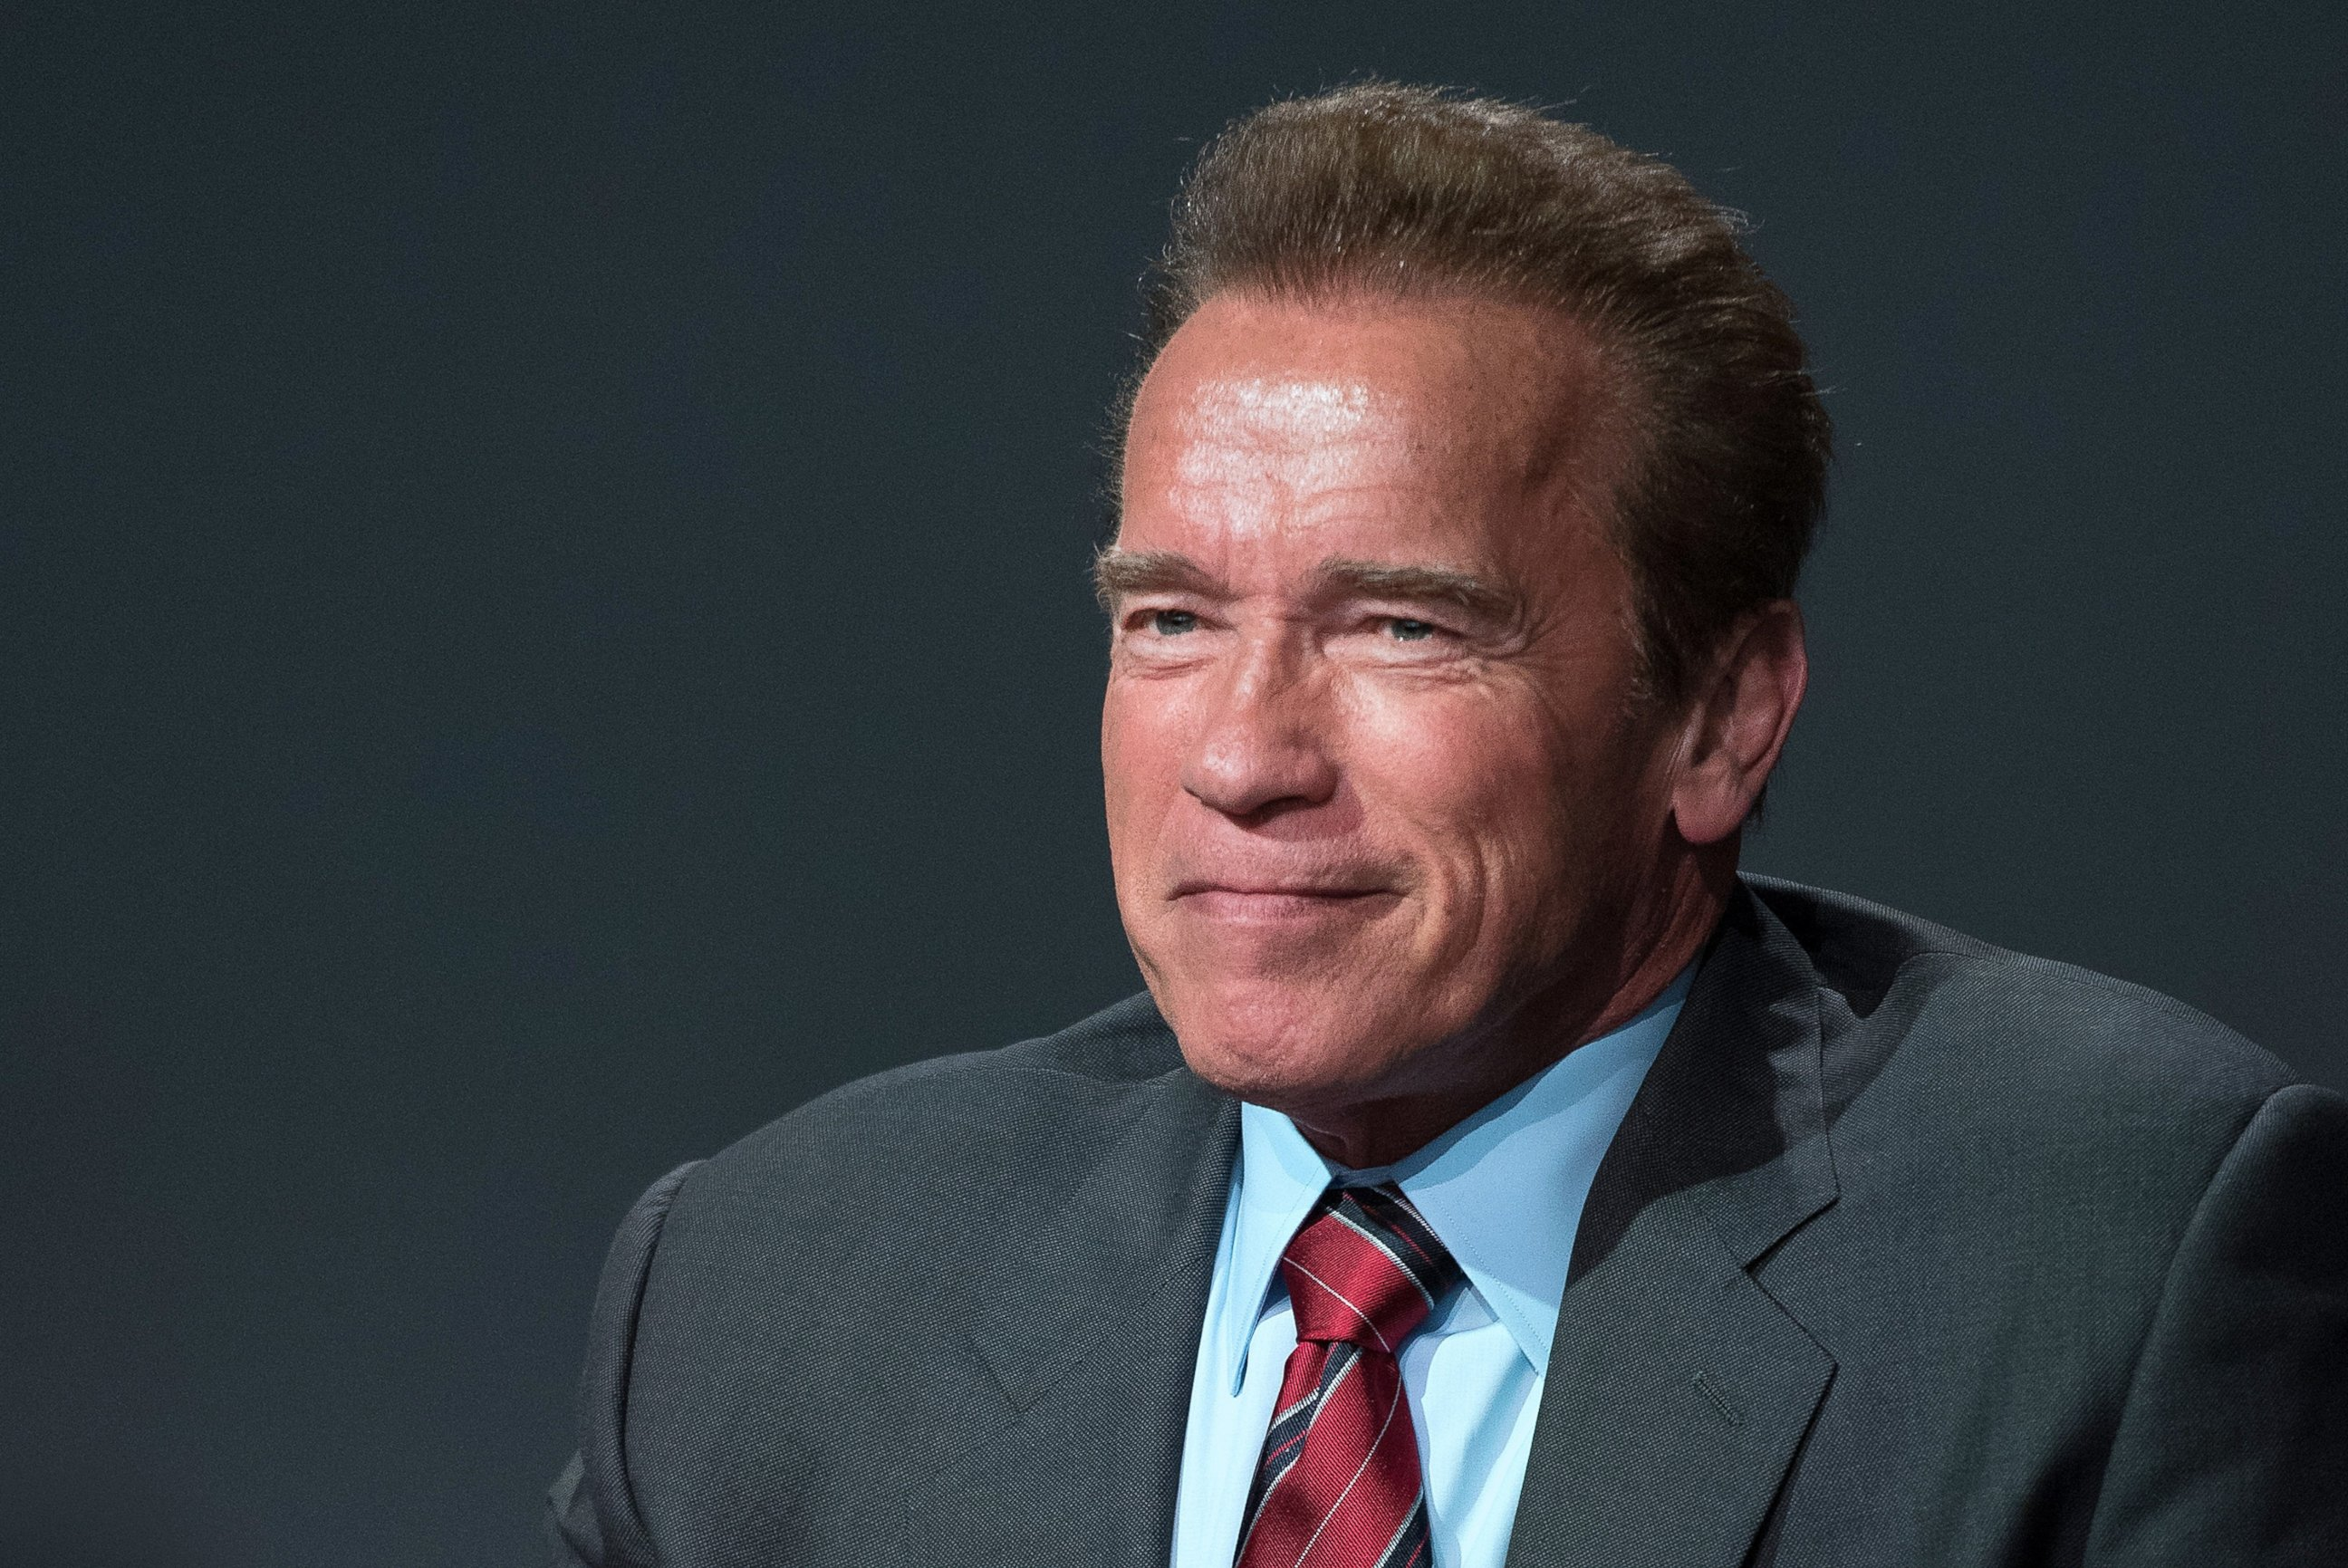 Arnold Schwarzenegger Photos and Images - ABC News Arnold Schwarzenegger